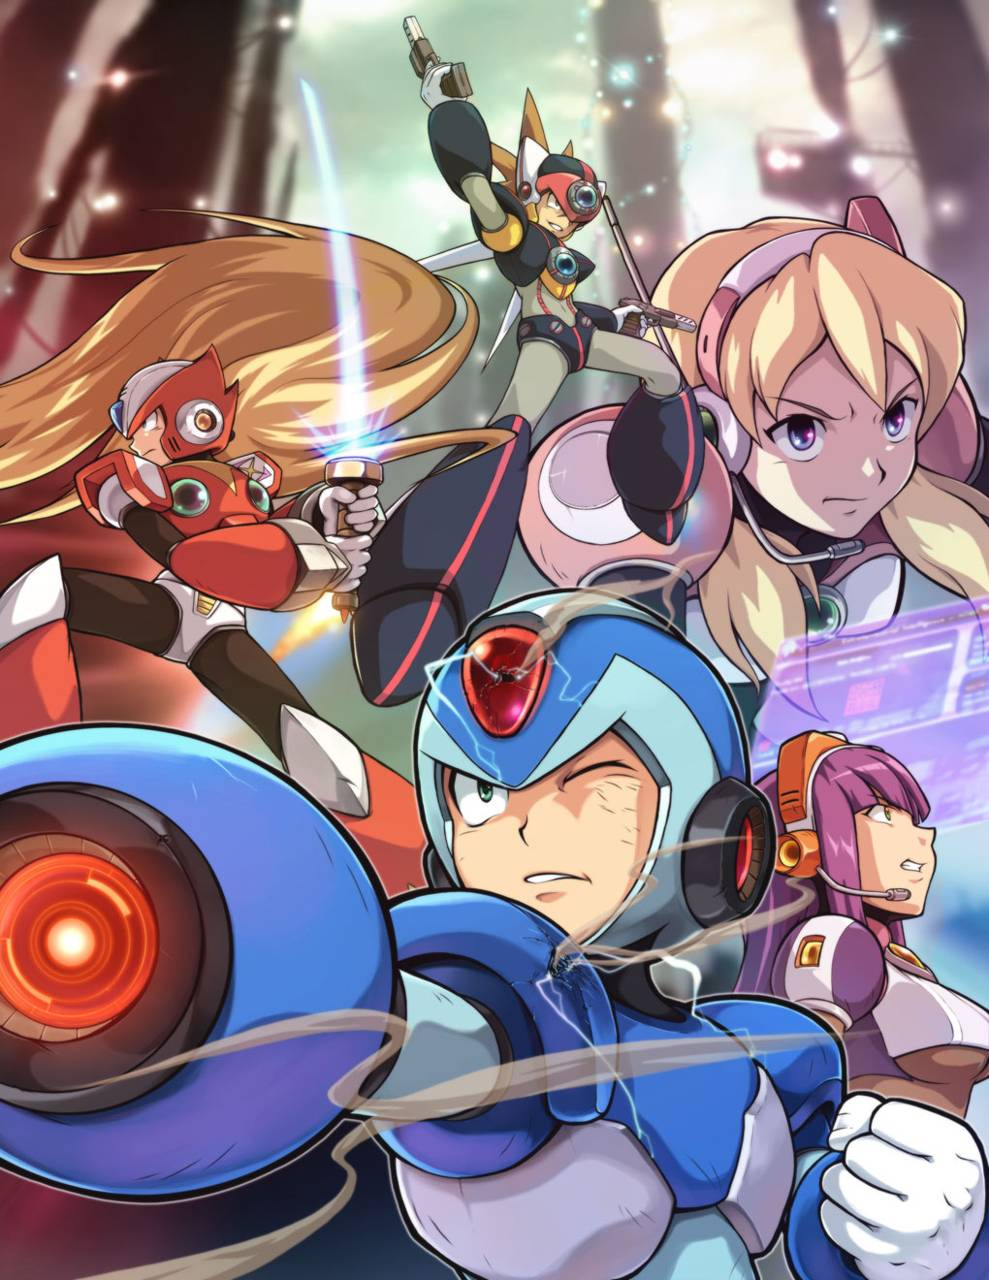 Mega Man X Wallpaper By Gabe98 82 Free On Zedge